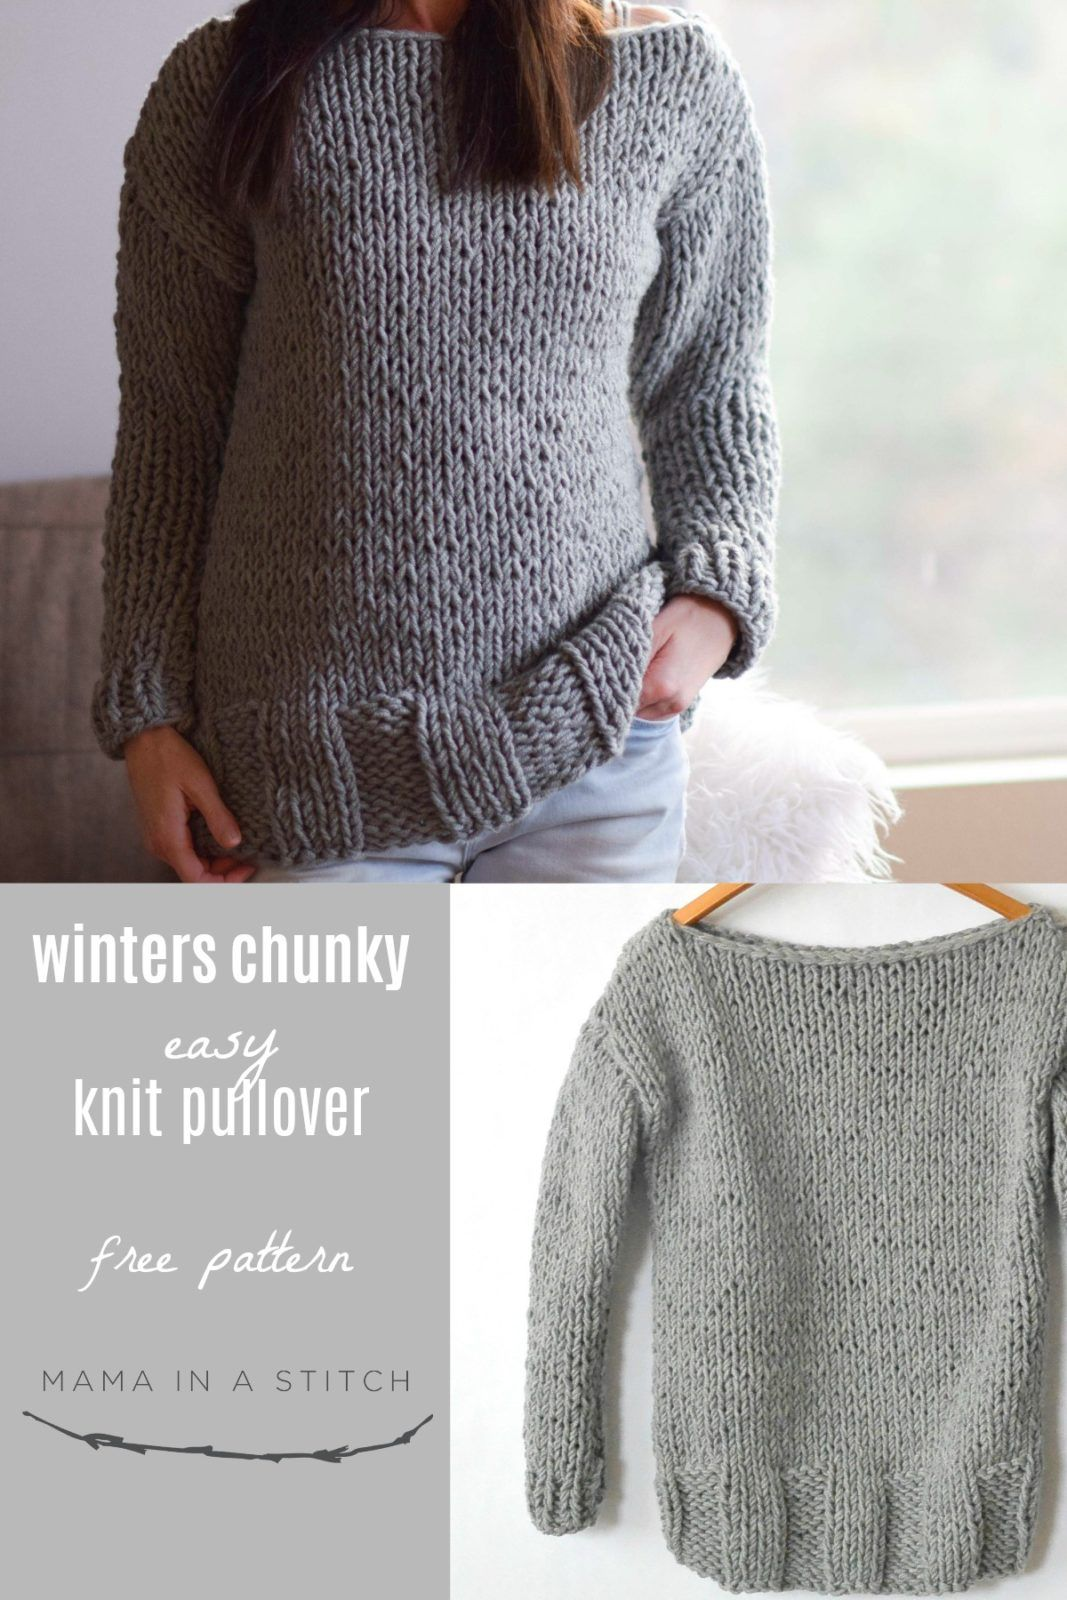 65b3d28e1 How To Knit A Super Chunky Pullover The ultimate knitting accomplishment.  KNITTING. A. SWEATER. (cue dramatic music) The truth is that most sweater  patterns ...